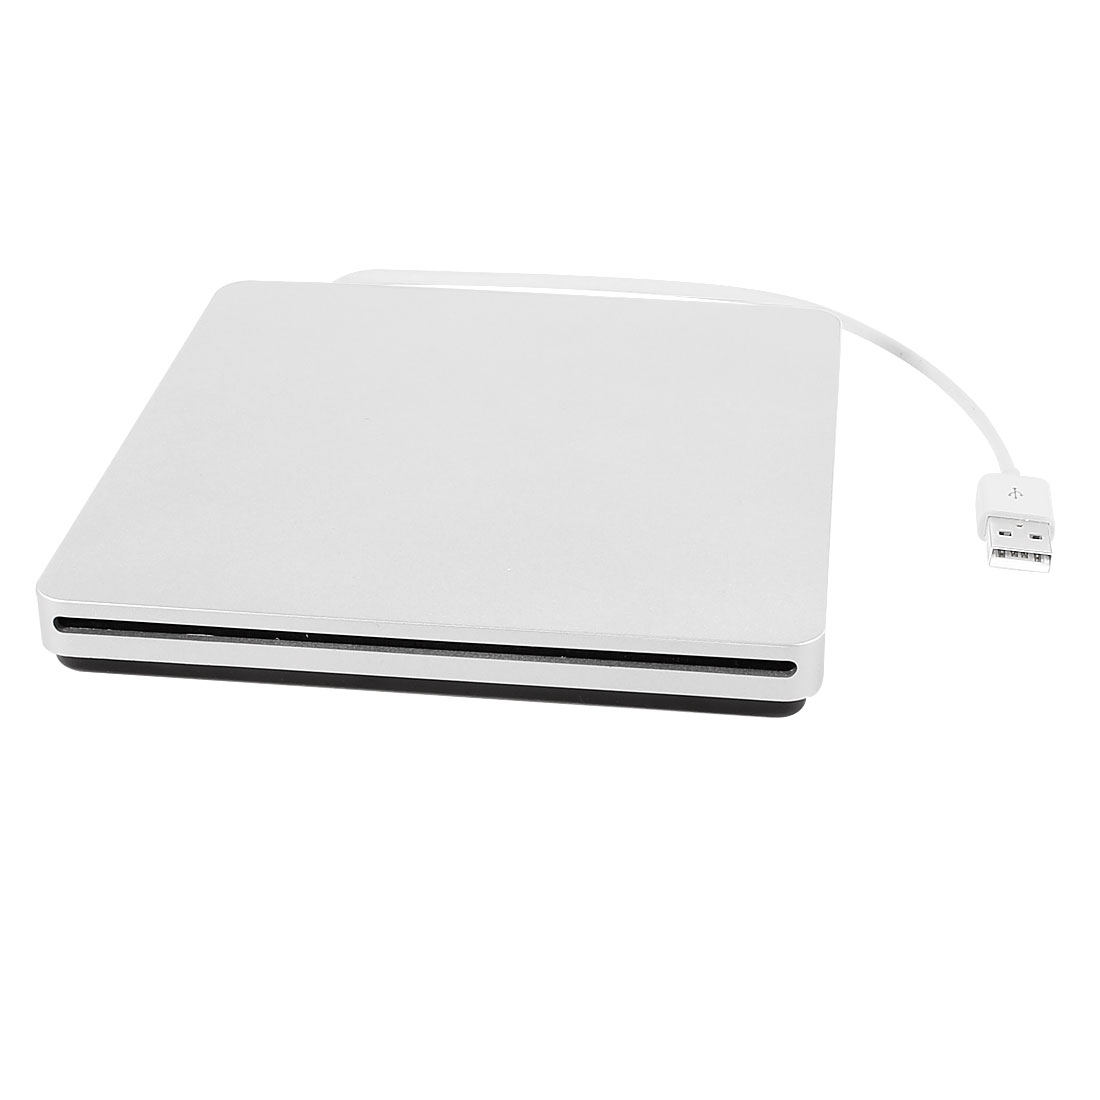 USB 2.0 External Slim Slot-in CD/DVD RW Burner Drive for Apple Macbook Pro